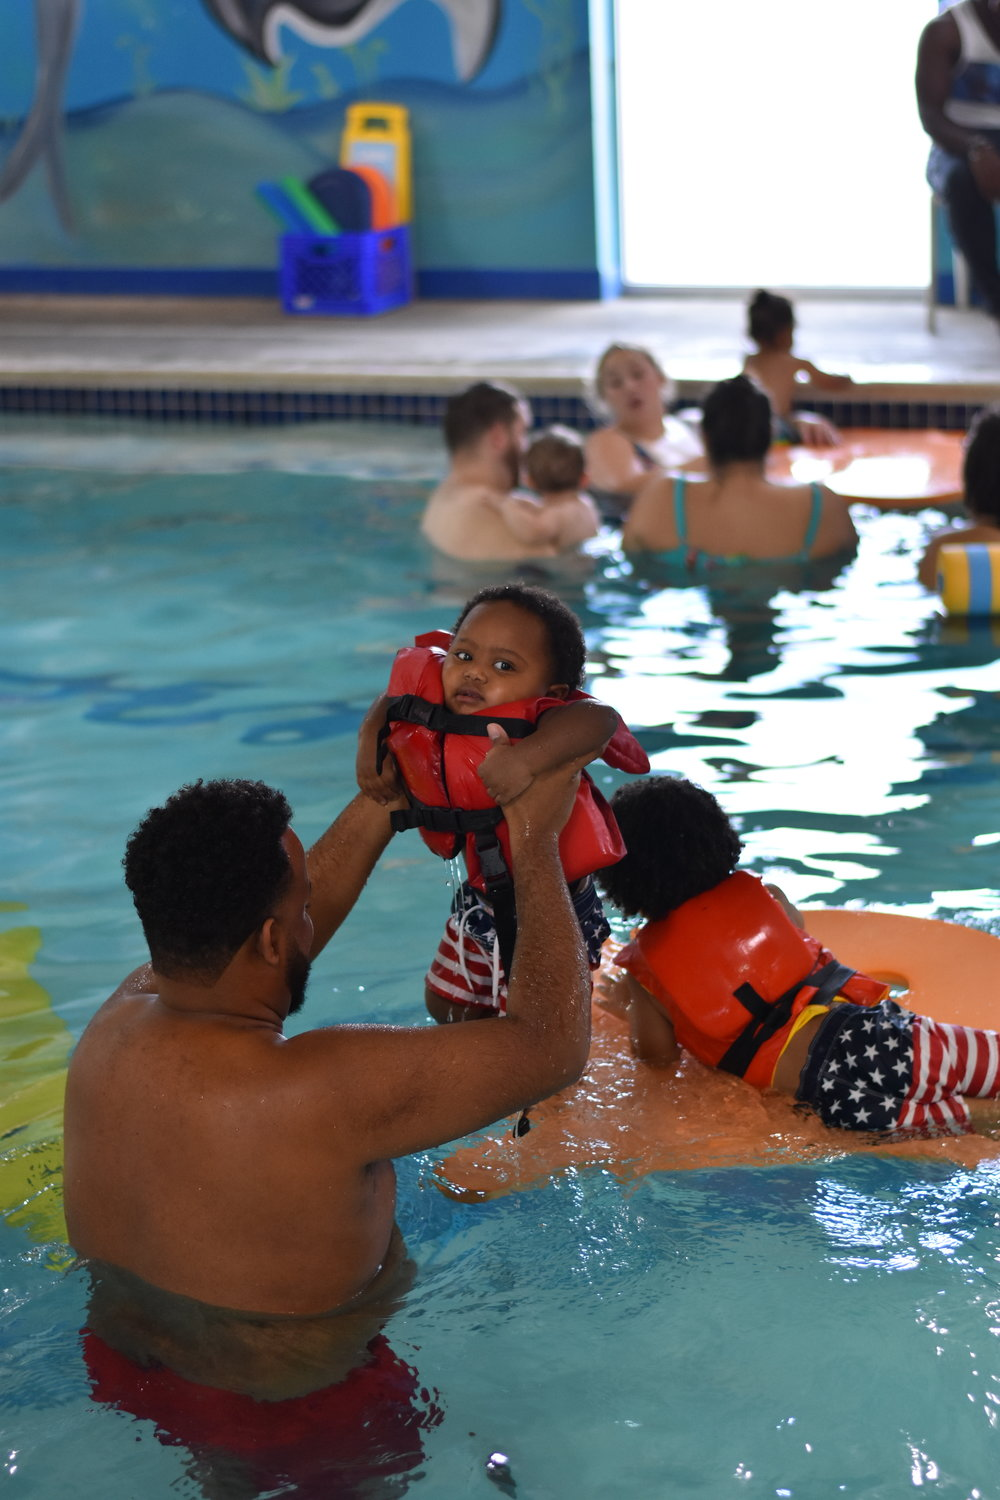 For safety, at least one parent needs to be in the water with a child during Family Swim events.